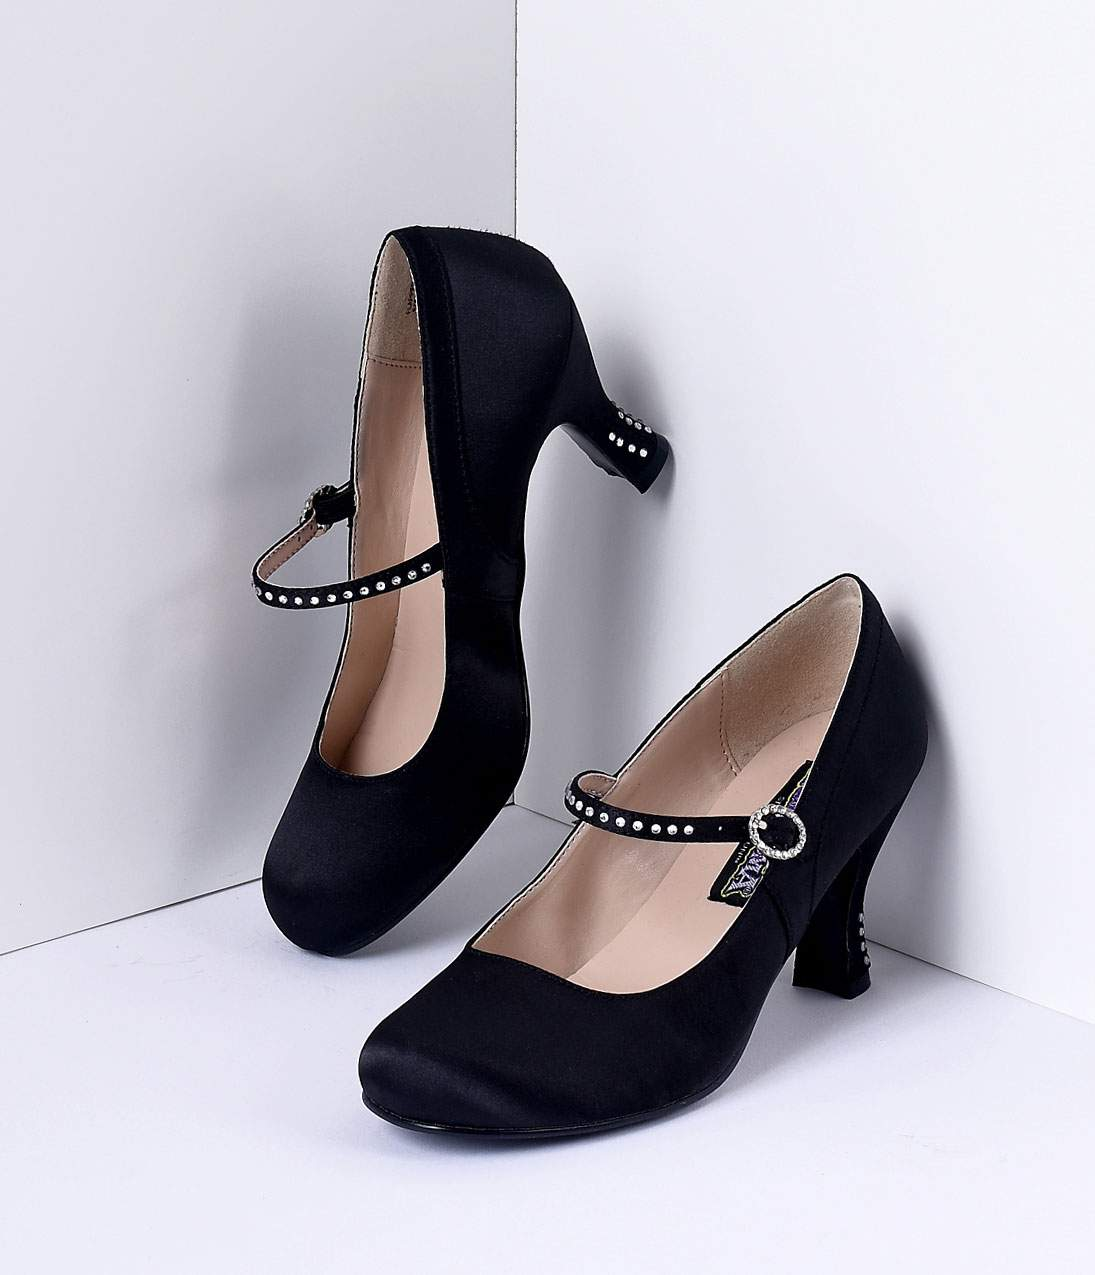 Vintage Style Shoes, Vintage Inspired Shoes Black Satin Flapper Style Rhinestone Kitten Heels $62.00 AT vintagedancer.com